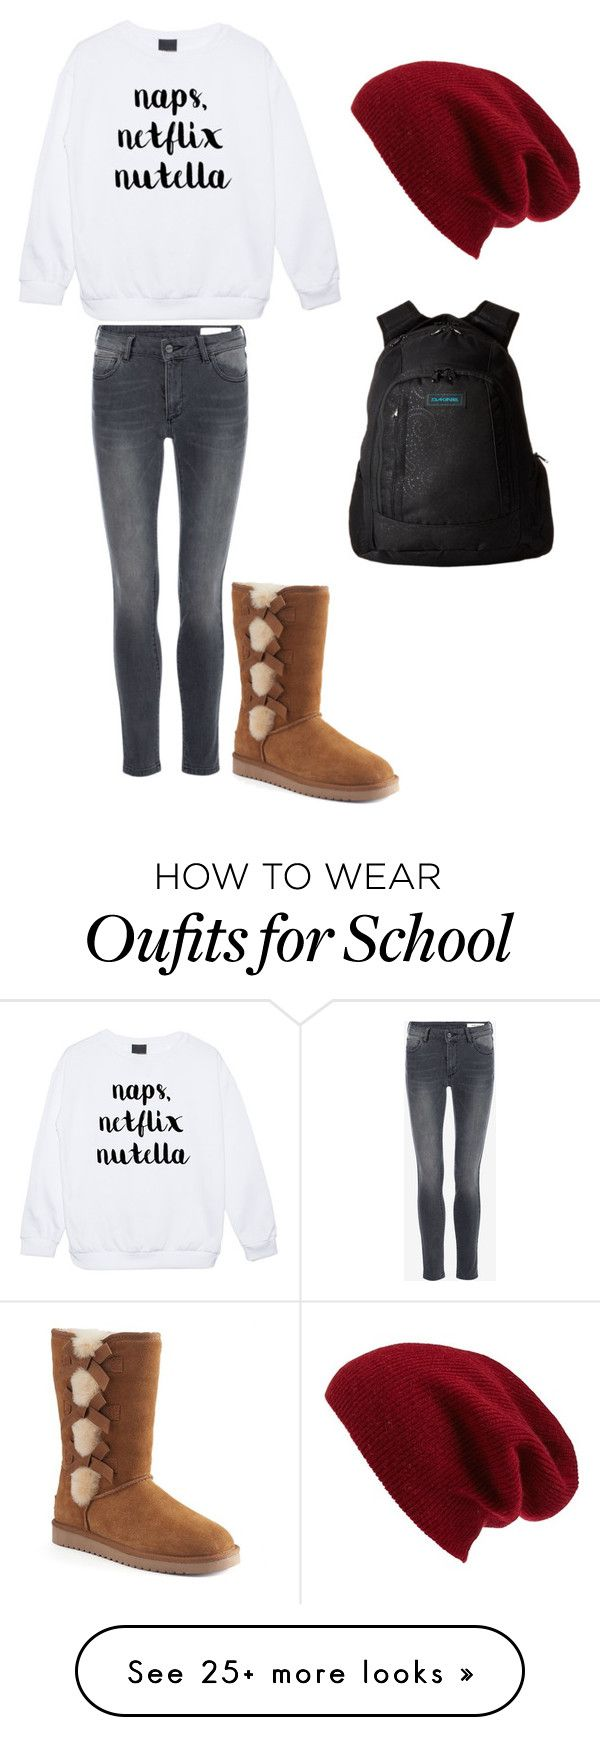 """Winter School Outfit"" by laineeb on Polyvore featuring Halogen, Koolaburra, Dakine and Winter"